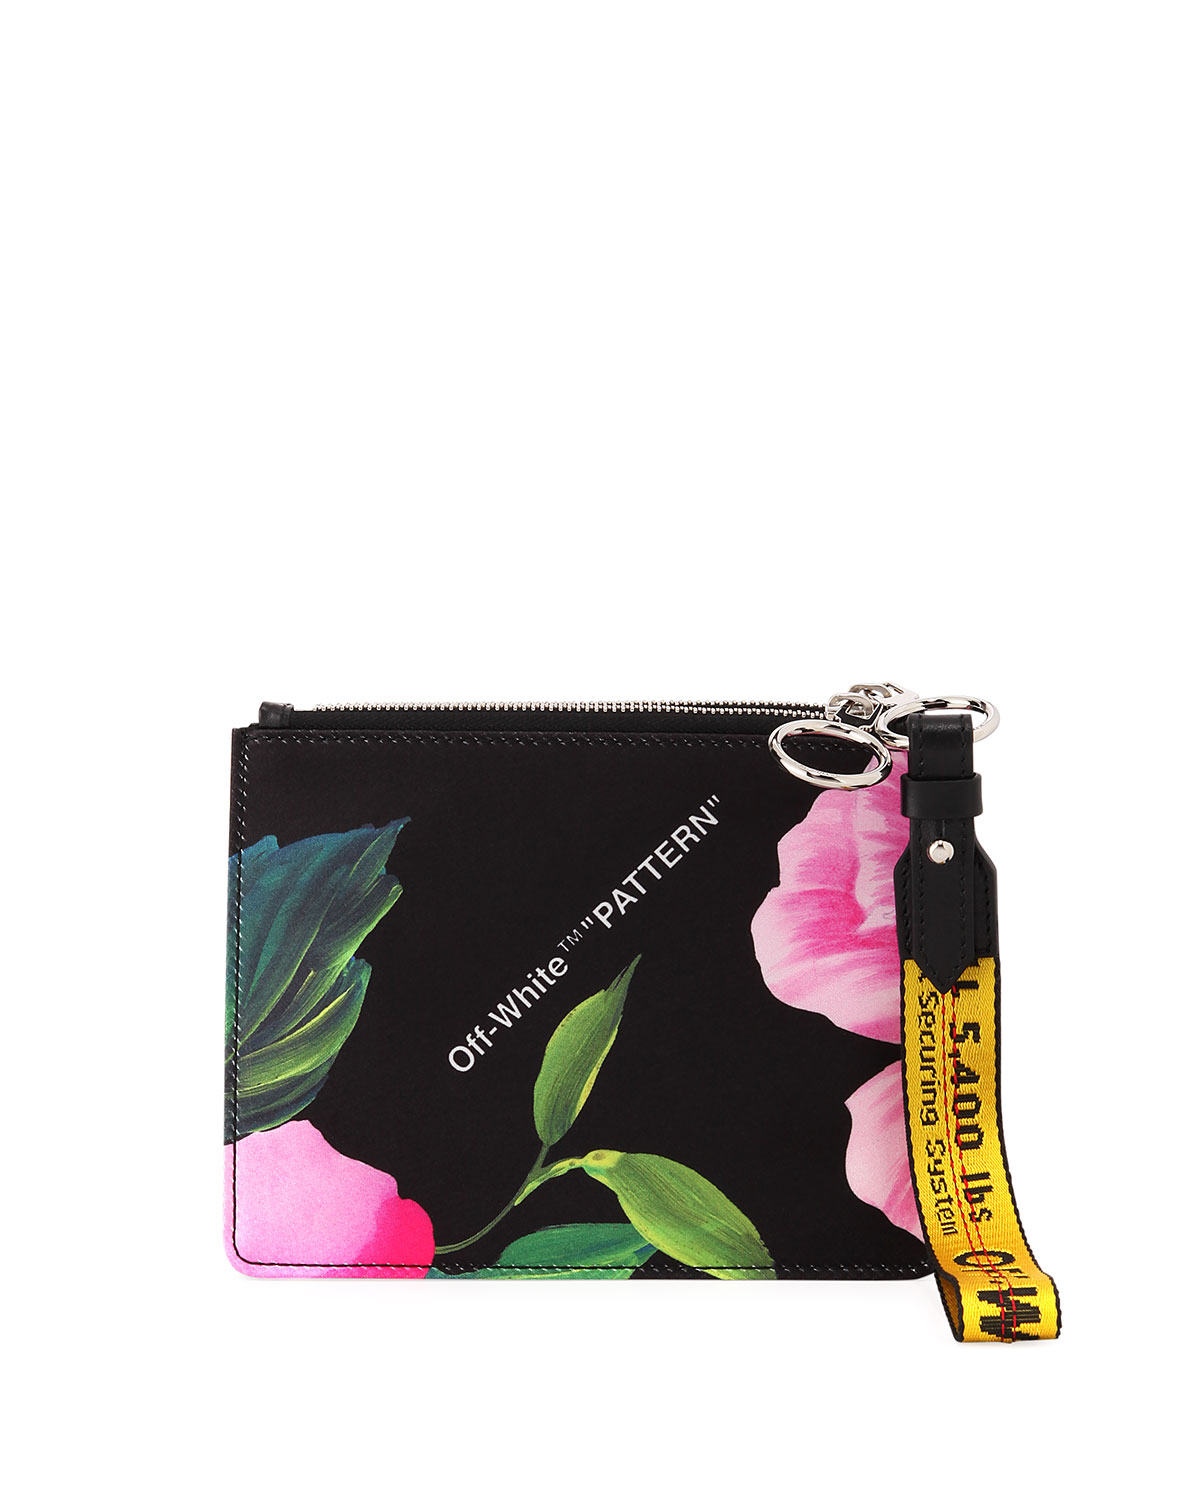 9e88f1809f7 Off-White Floral Double Flat Clutch Bag | Neiman Marcus